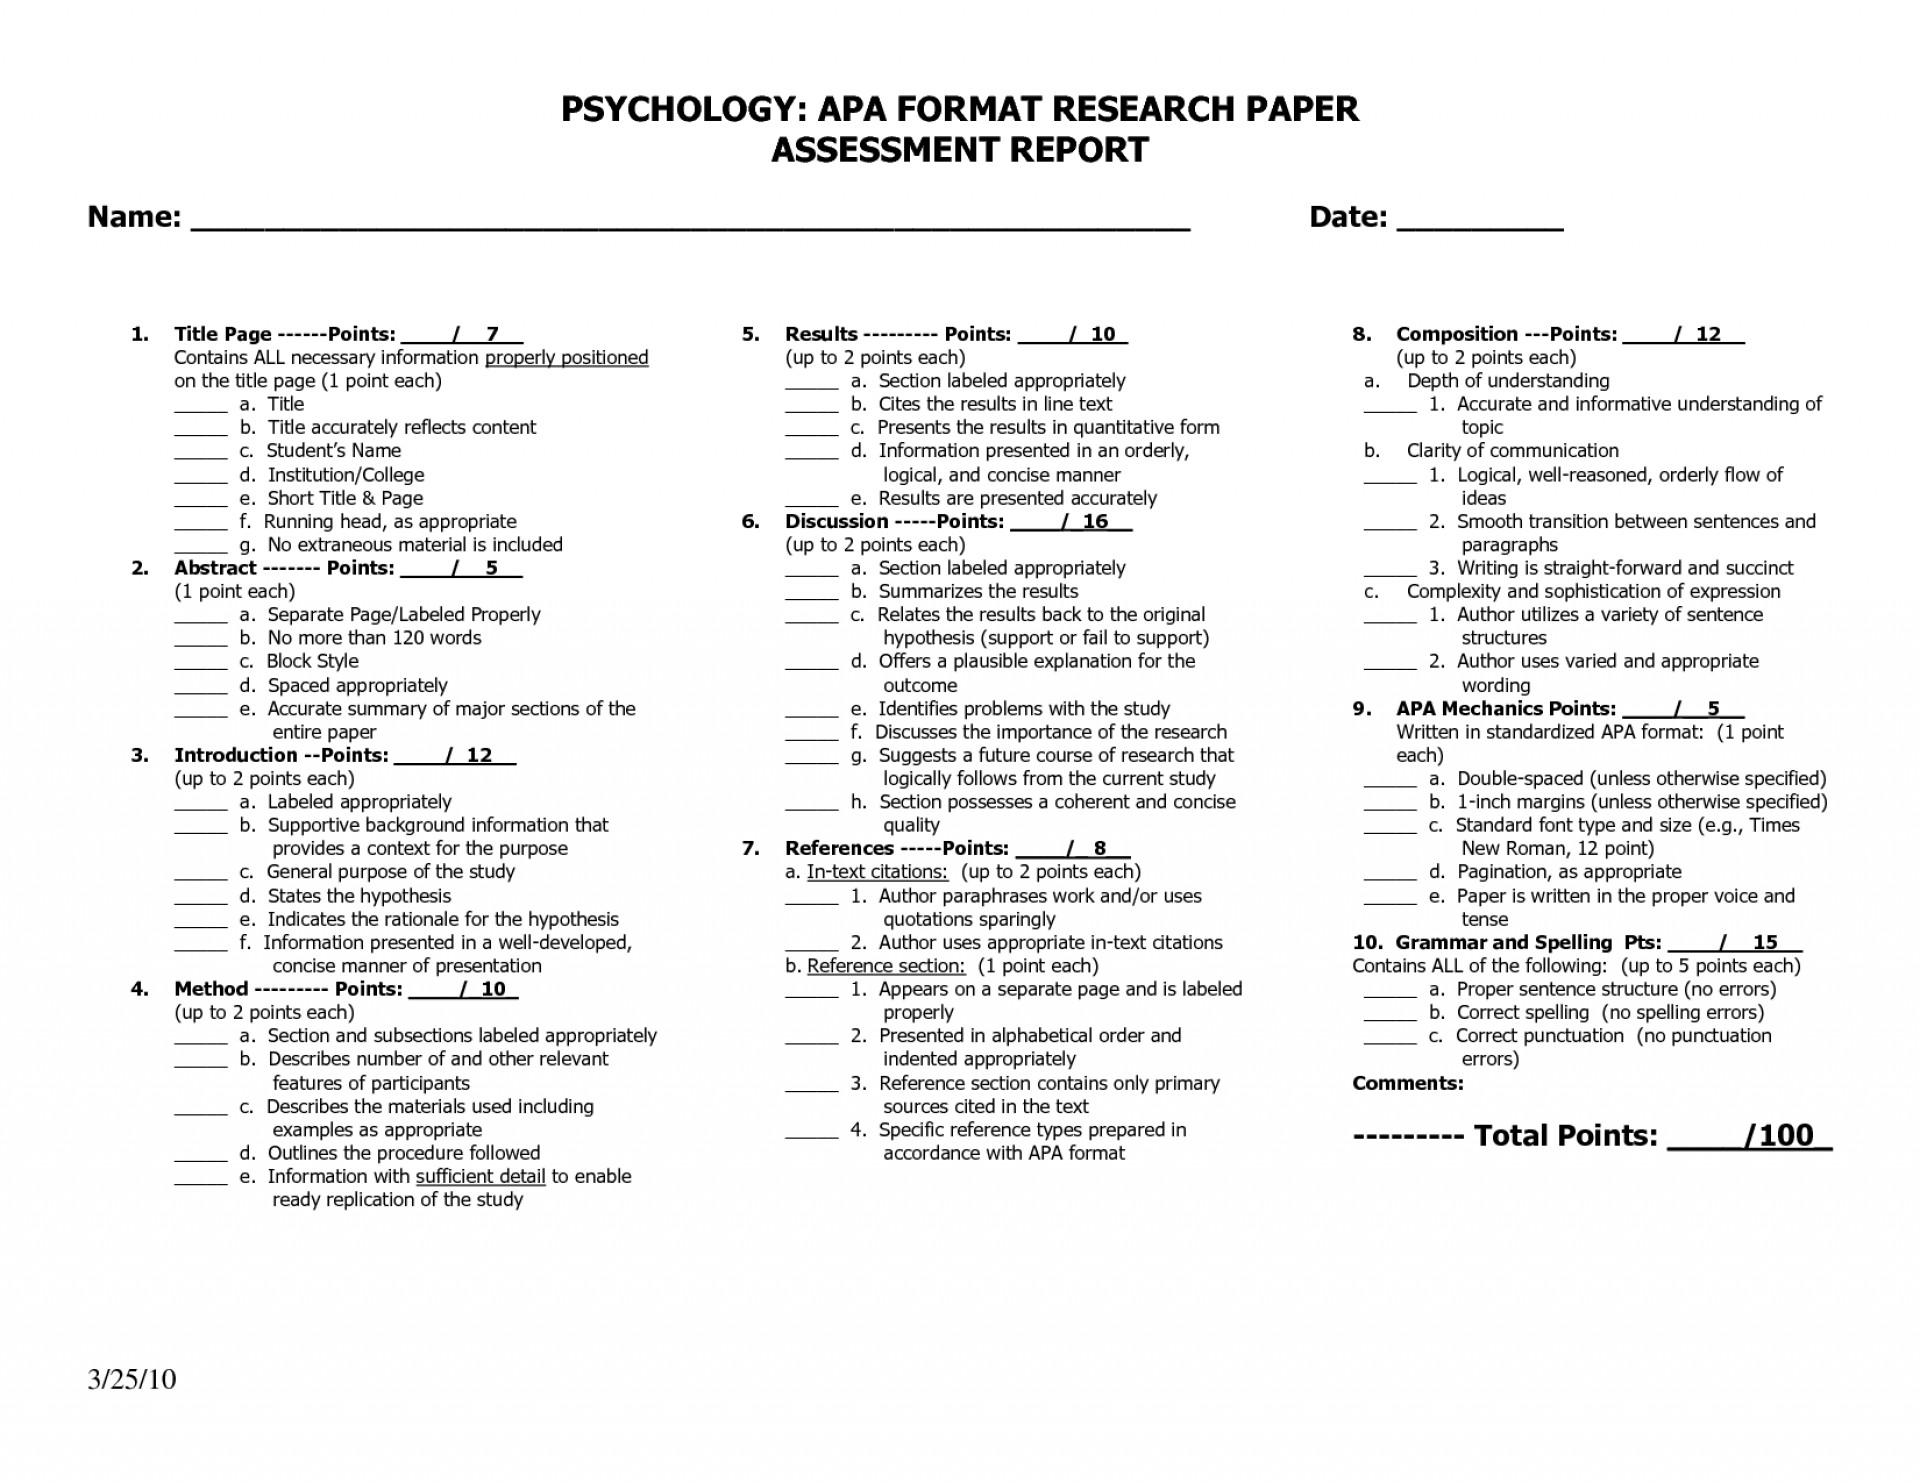 021 Research Paper Apa Format For Psychology Striking Topics Depression Papers On Dreams 1920